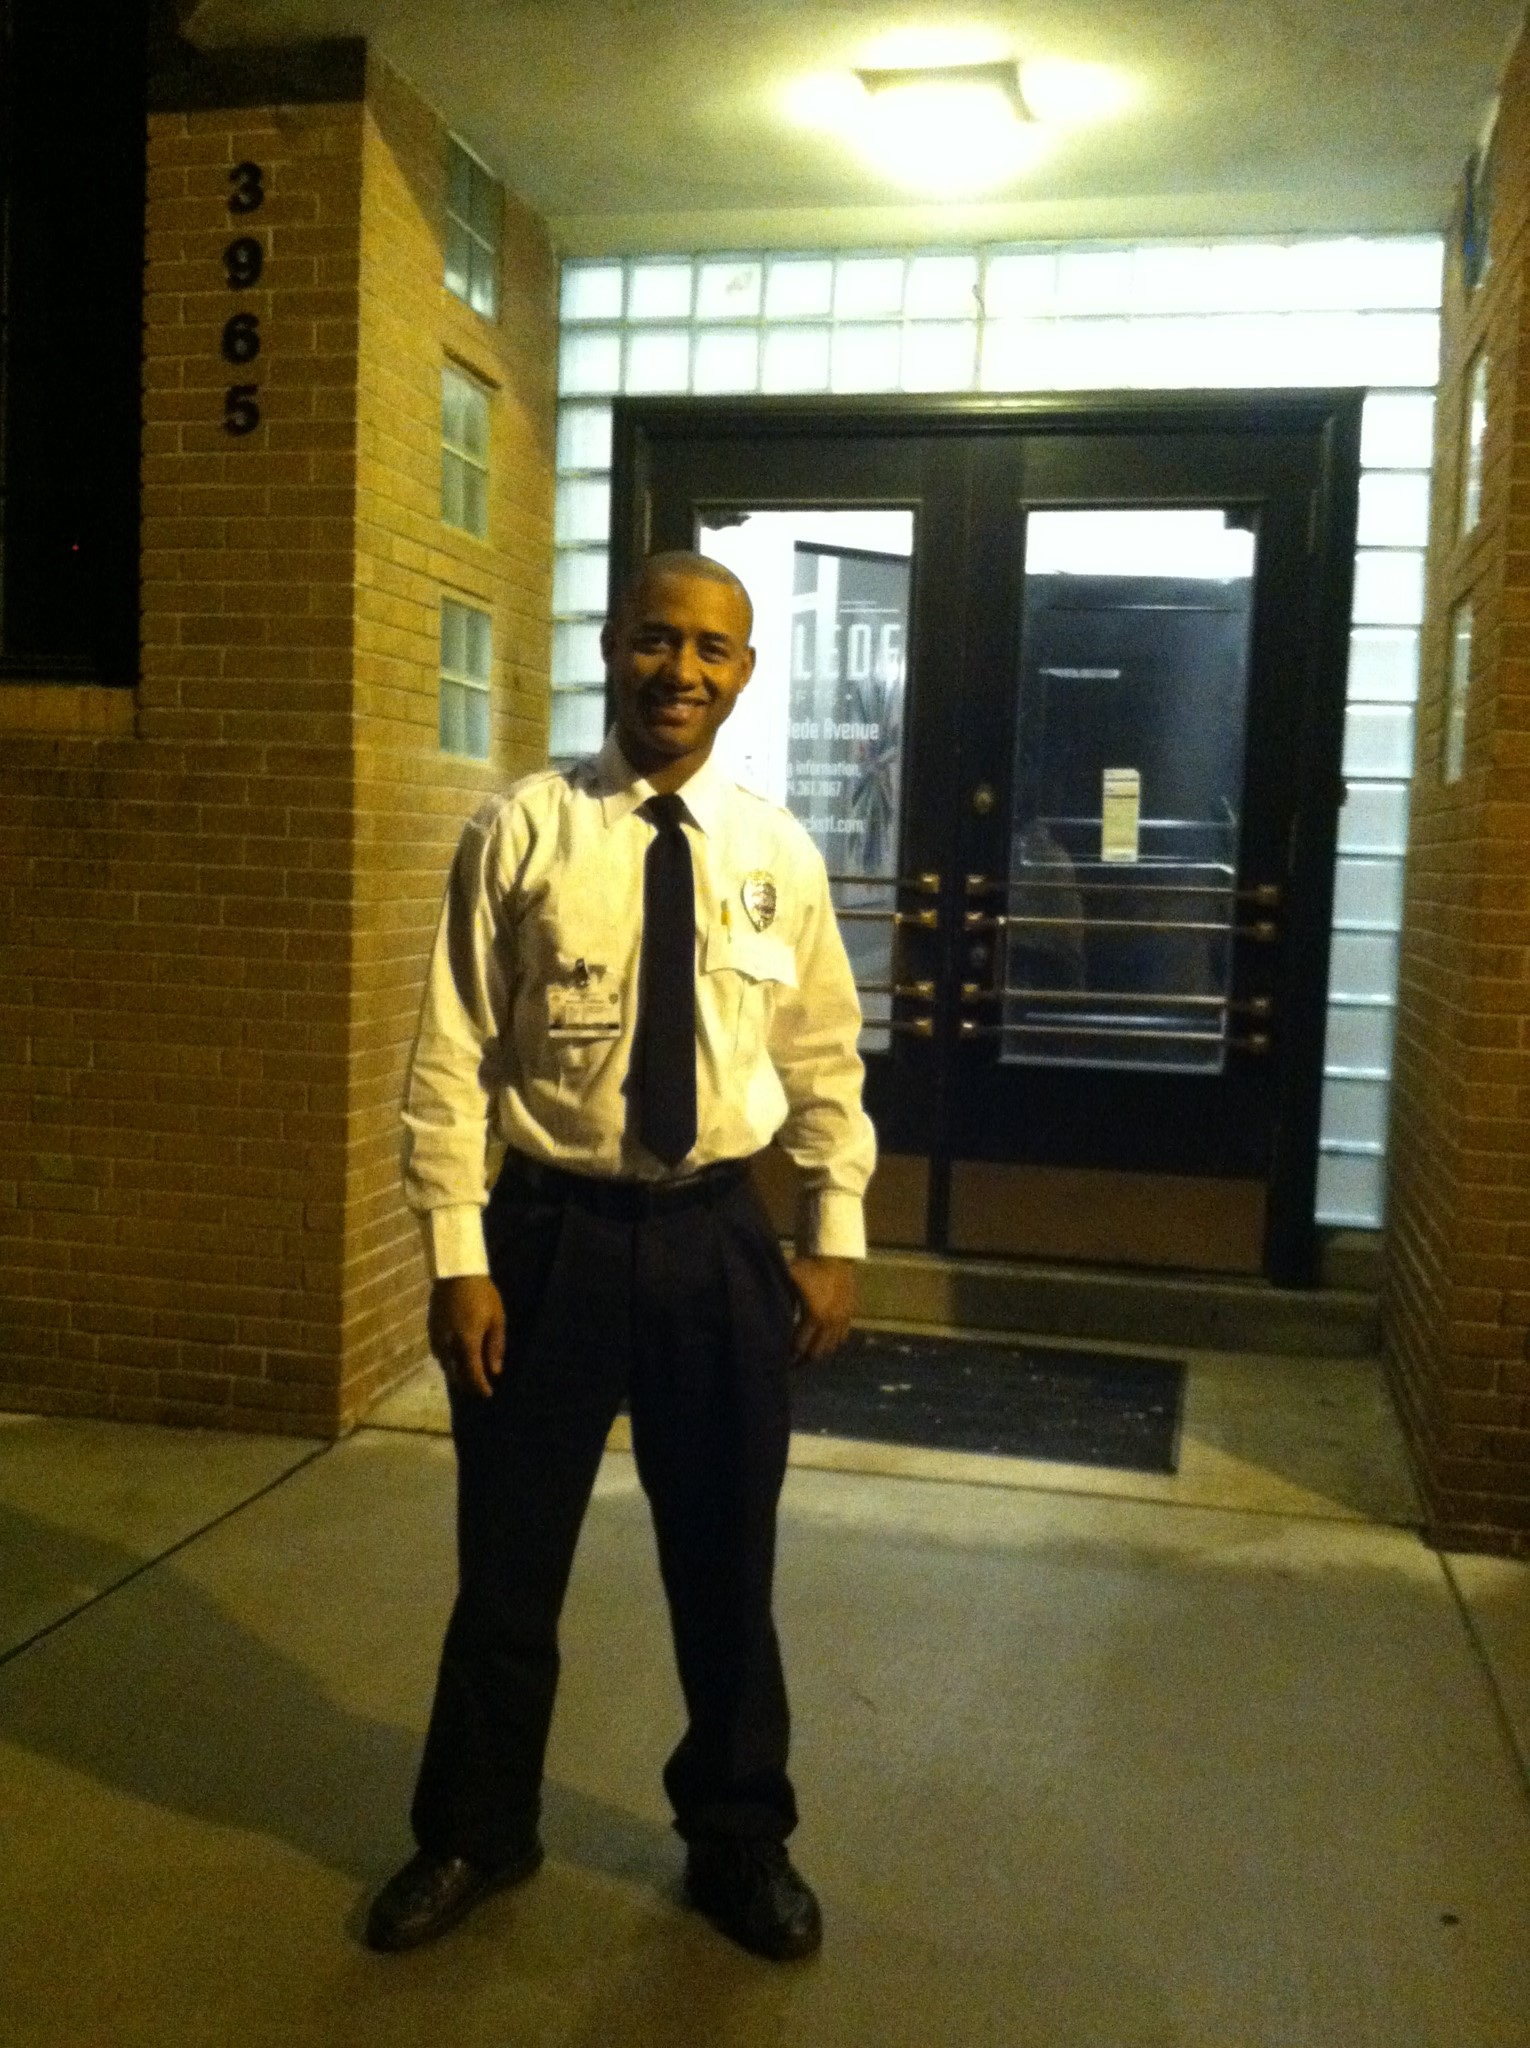 Private Security Houston Texas